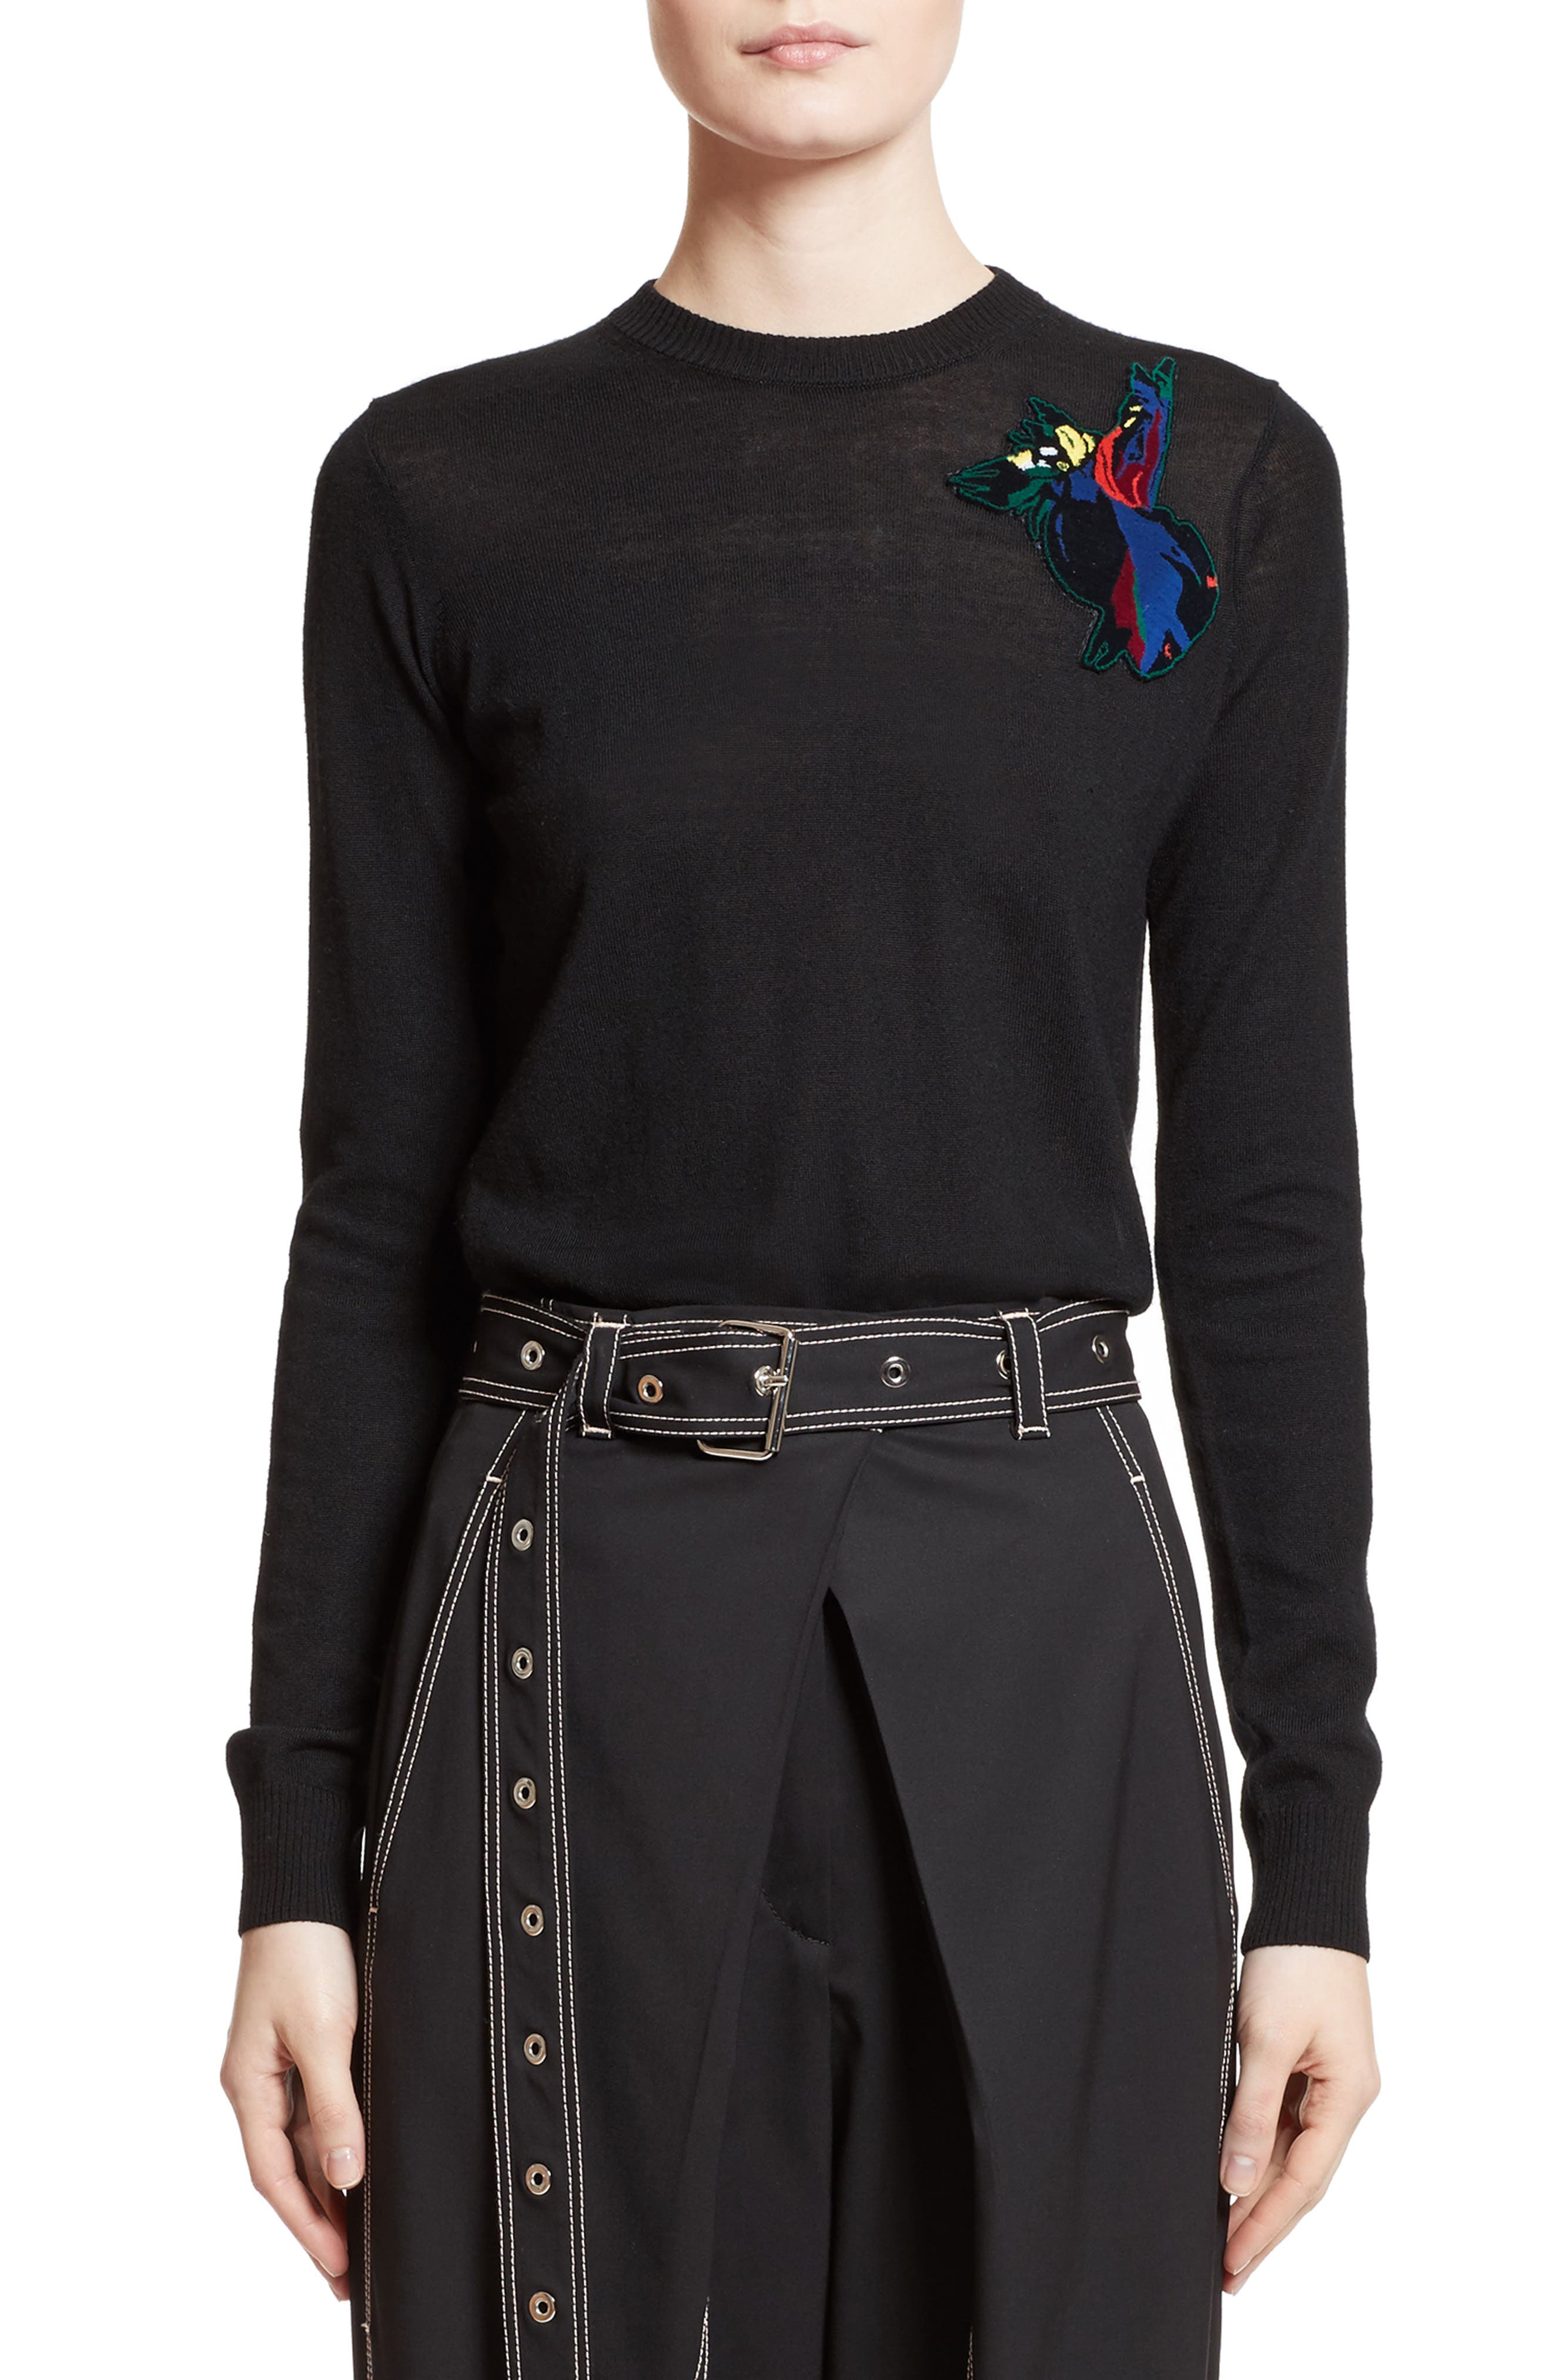 Patch Embellished Wool Sweater,                             Main thumbnail 1, color,                             001